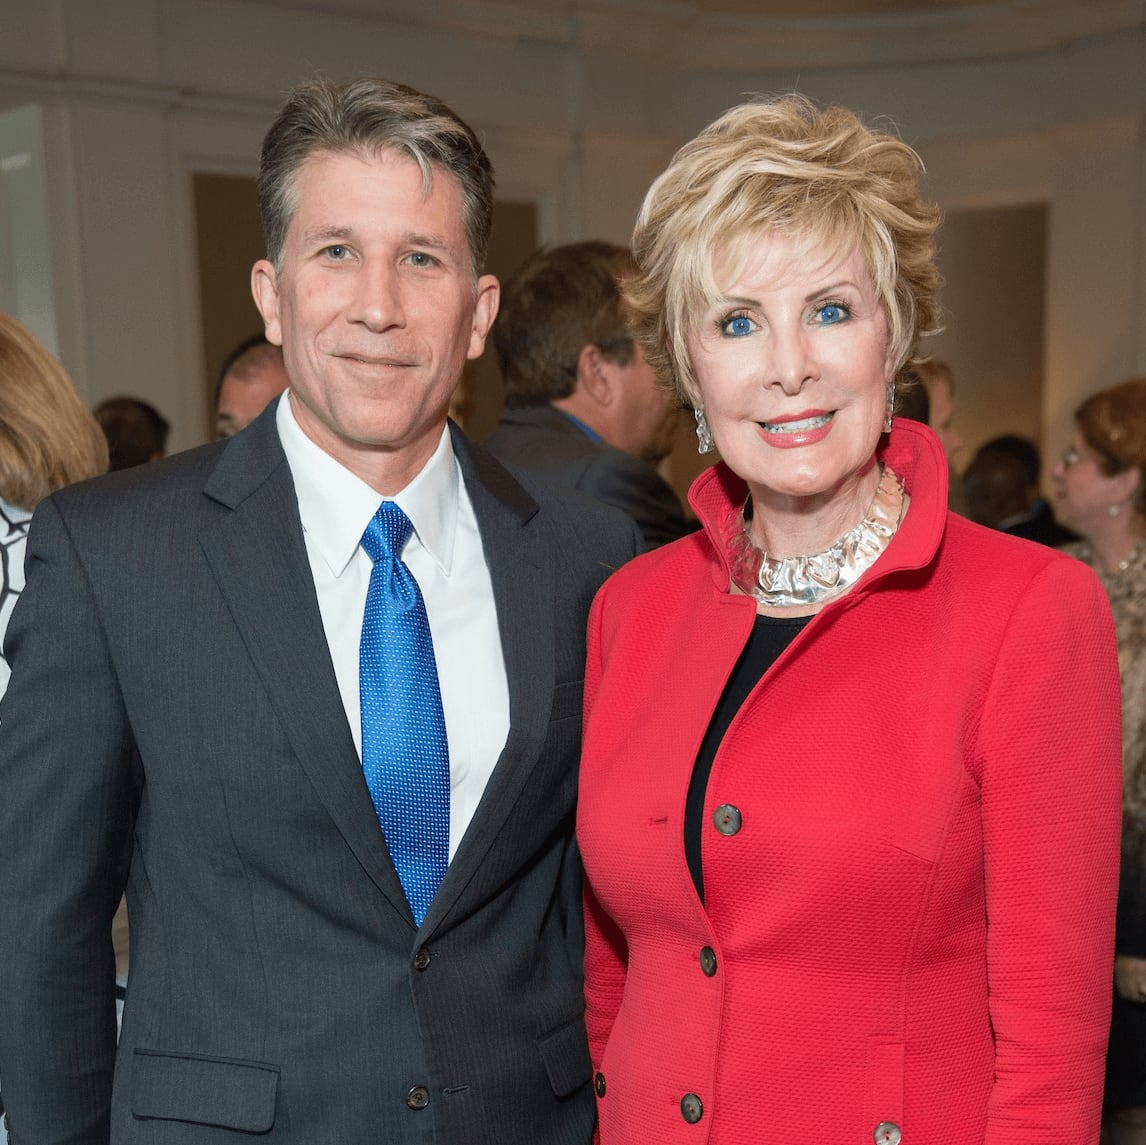 Mission to Mars luncheon 9/16, Jeff Whetzel, Mary Ann Wilkins